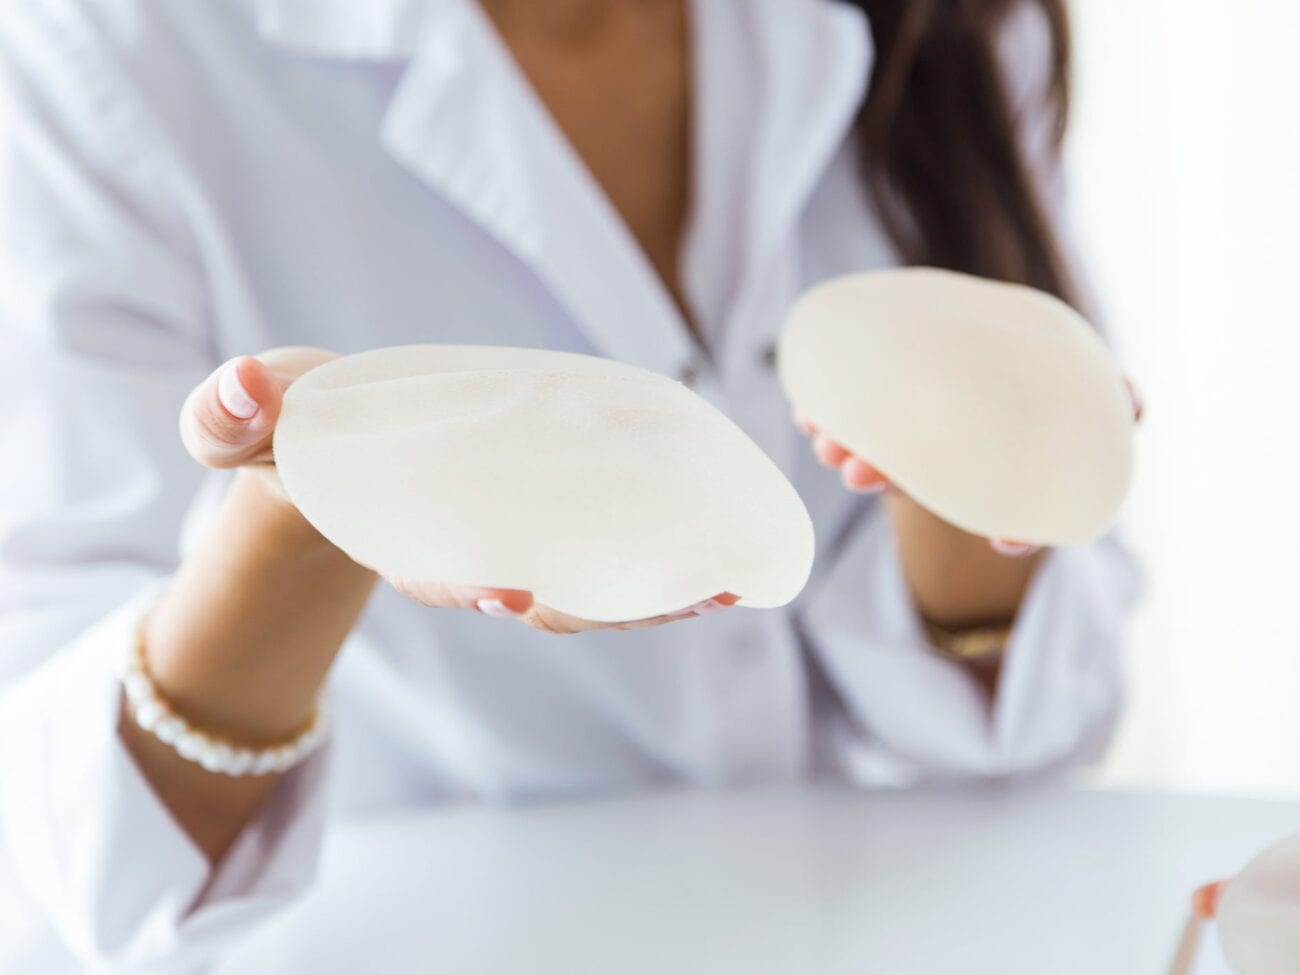 If you've ever considered getting breast implants then maybe you should wait. Could this illness be caused by an implant?